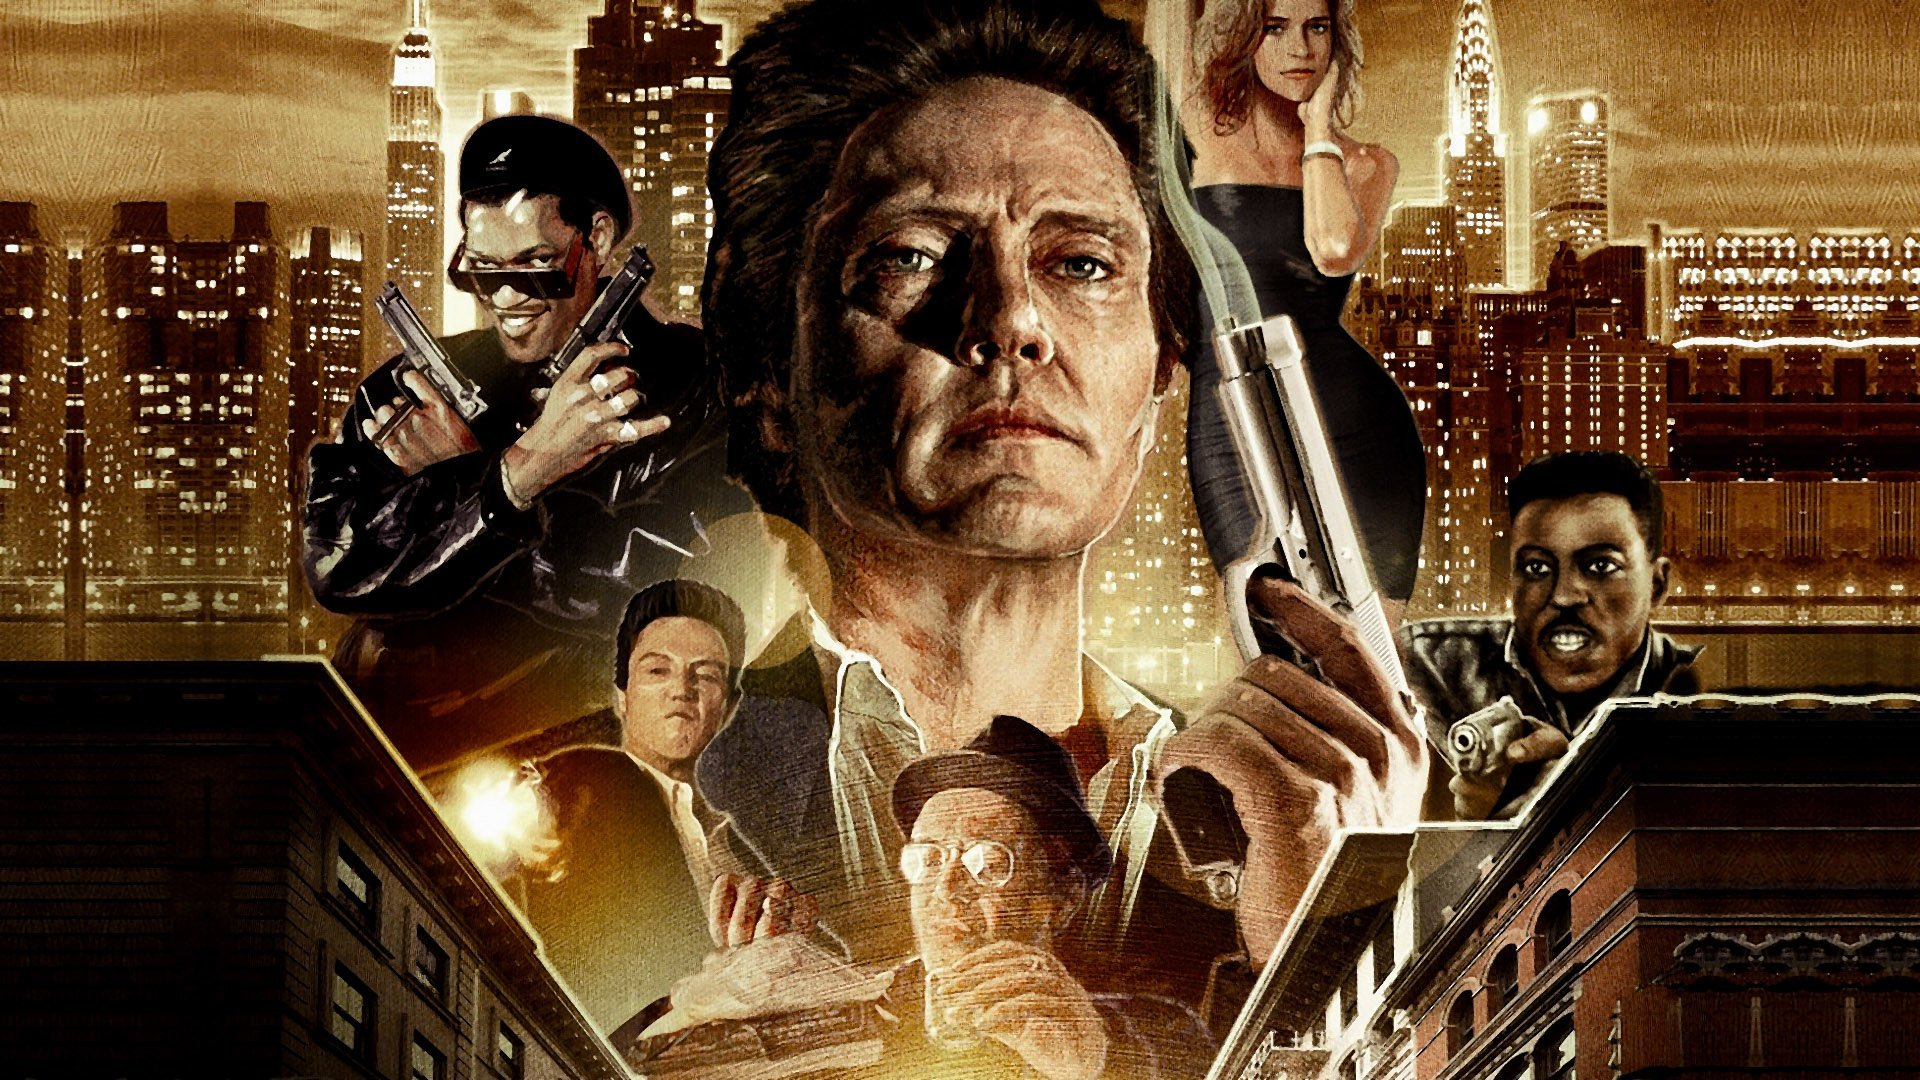 King of New York Podcast Review